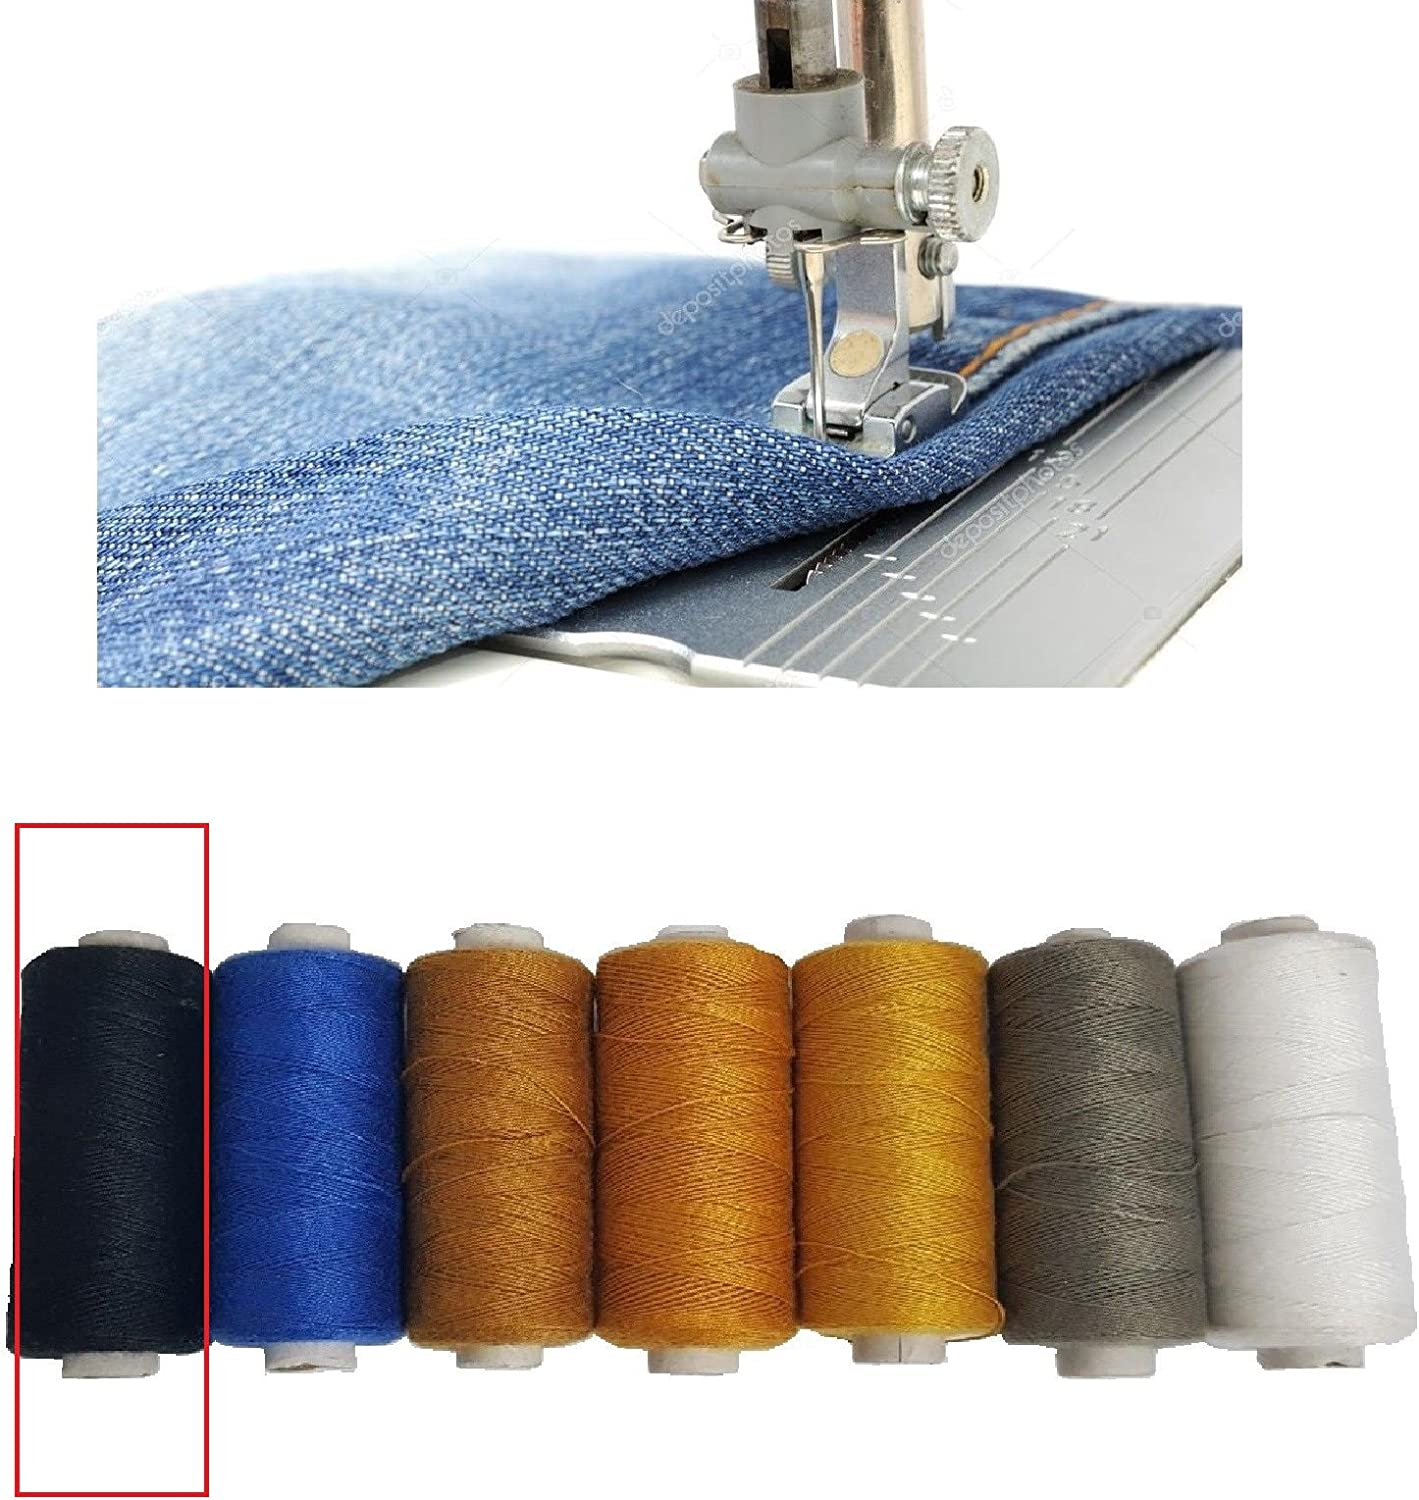 Black Denim Threads Polyester Cotton Spools Sewing Strong Stitch Button Jeans Repair